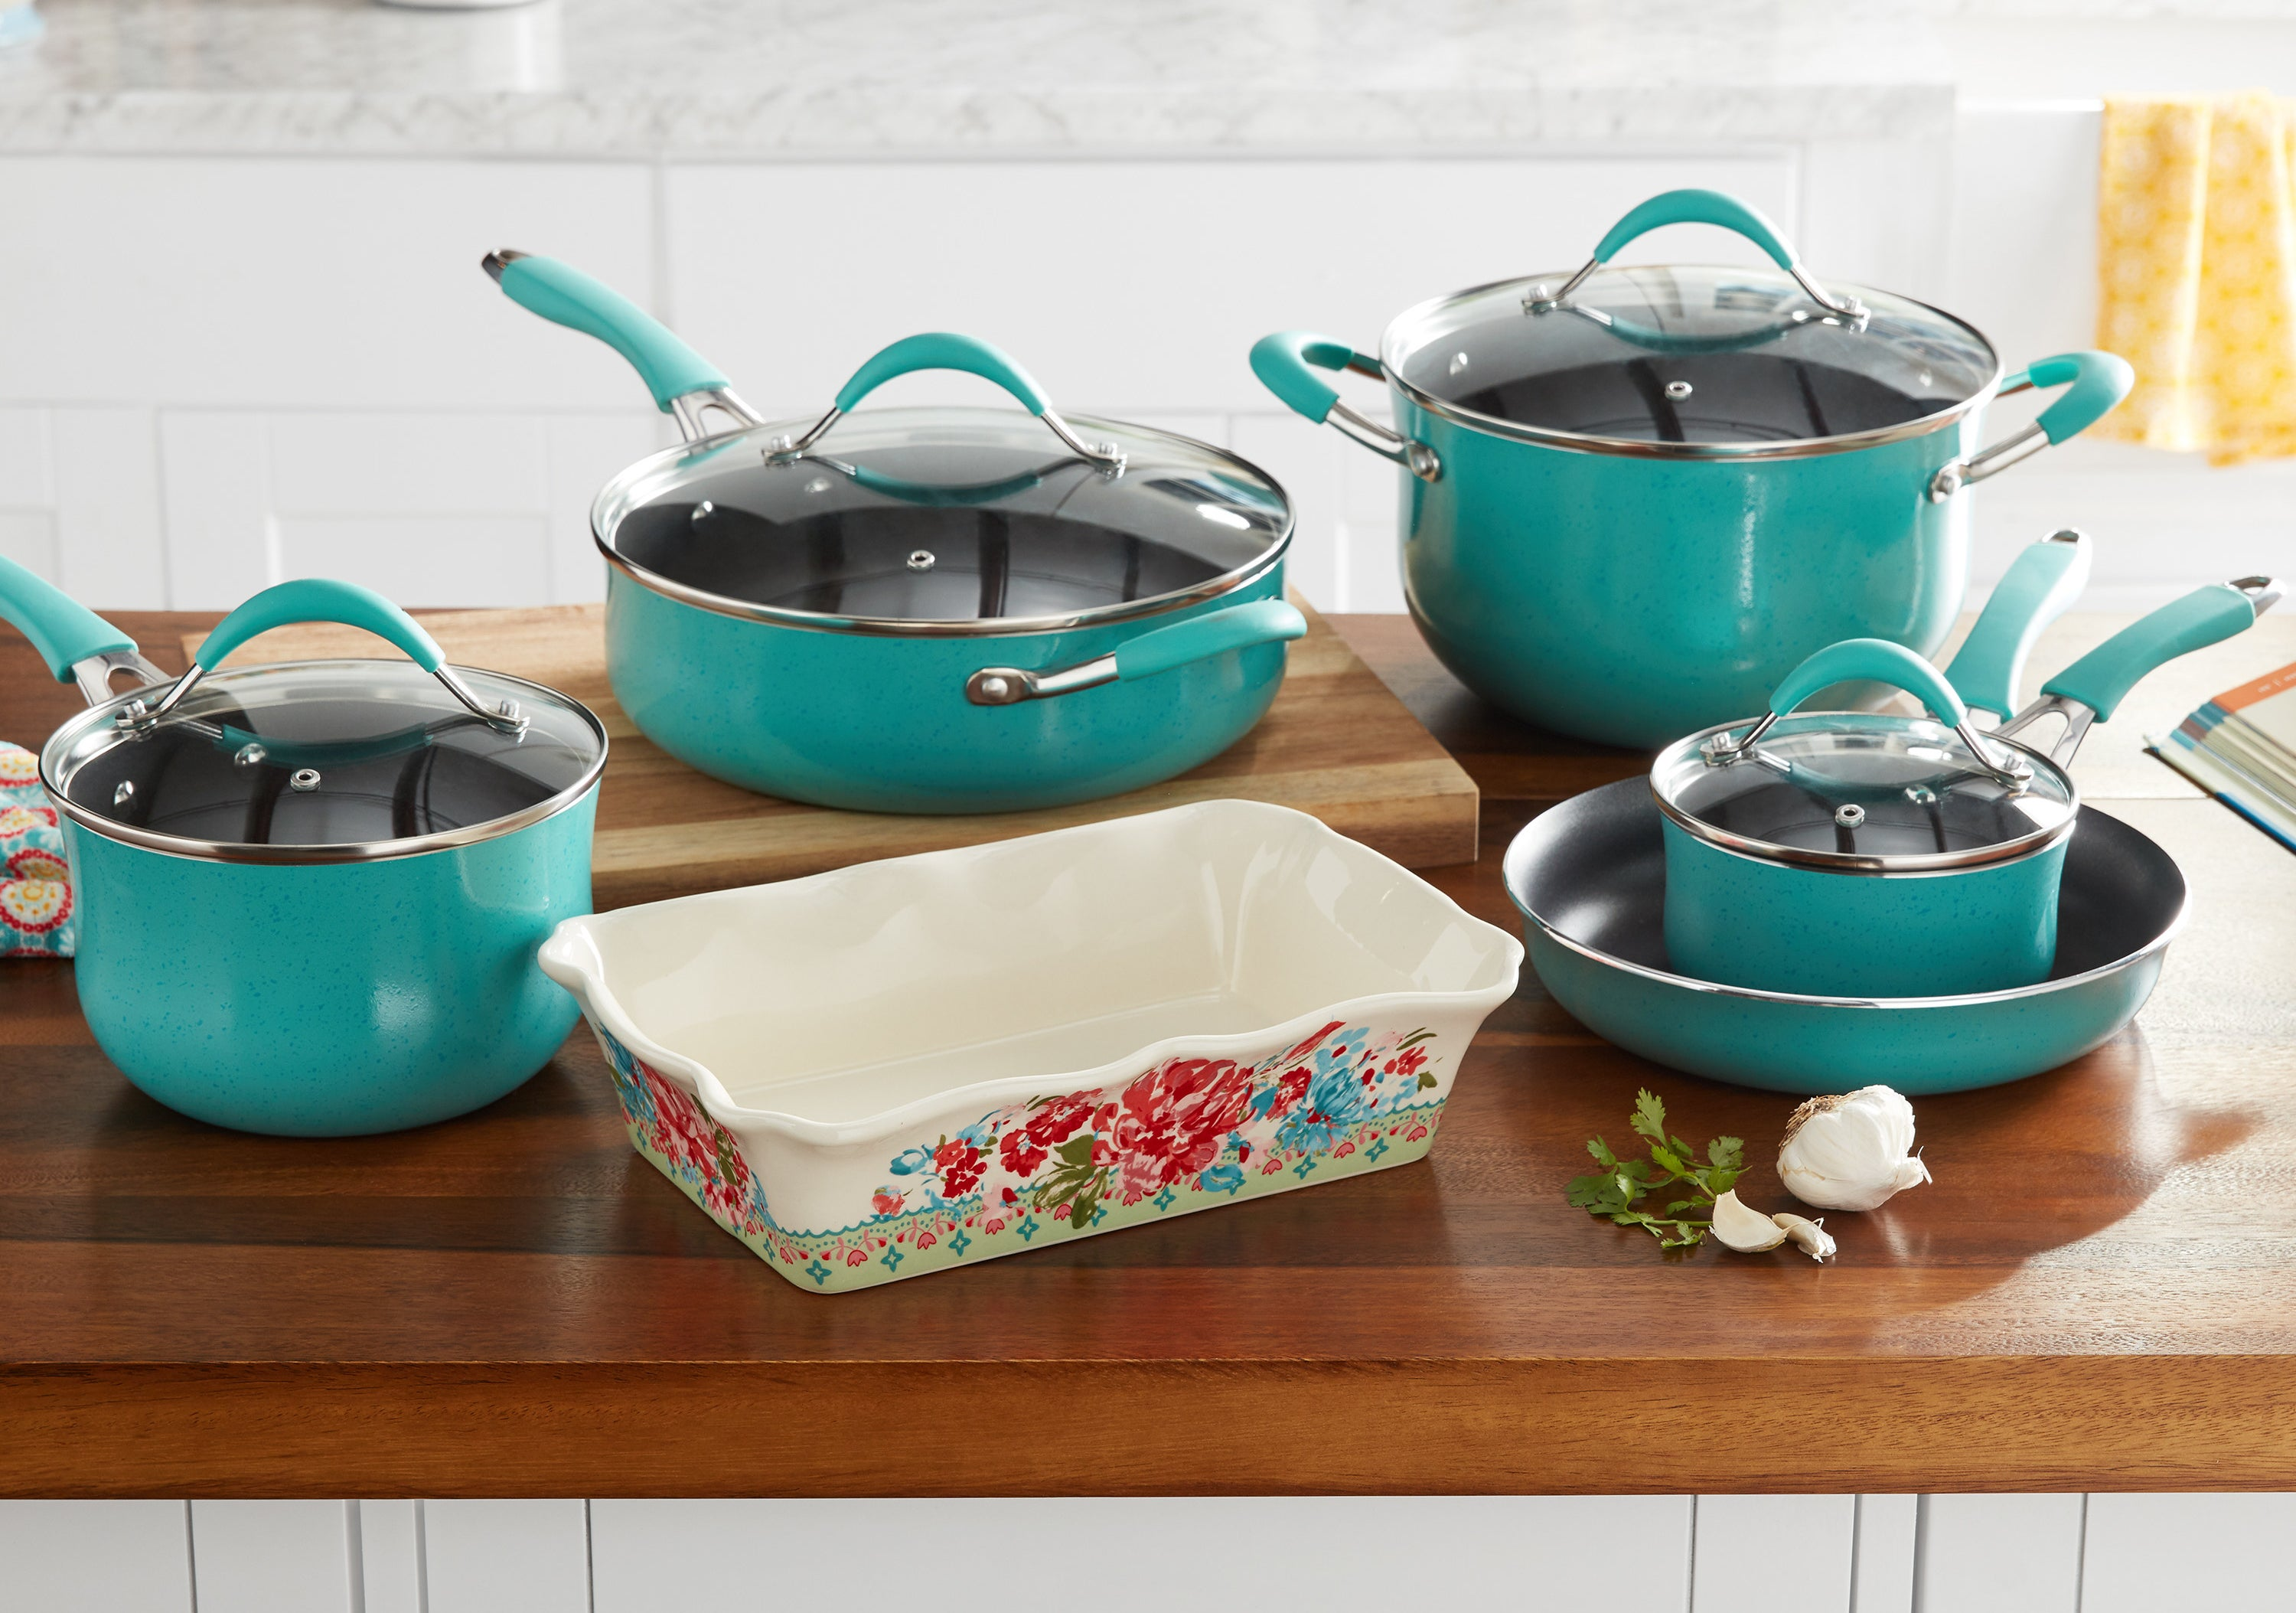 turquoise pots and pans and a floral casserole dish on the kitchen counter